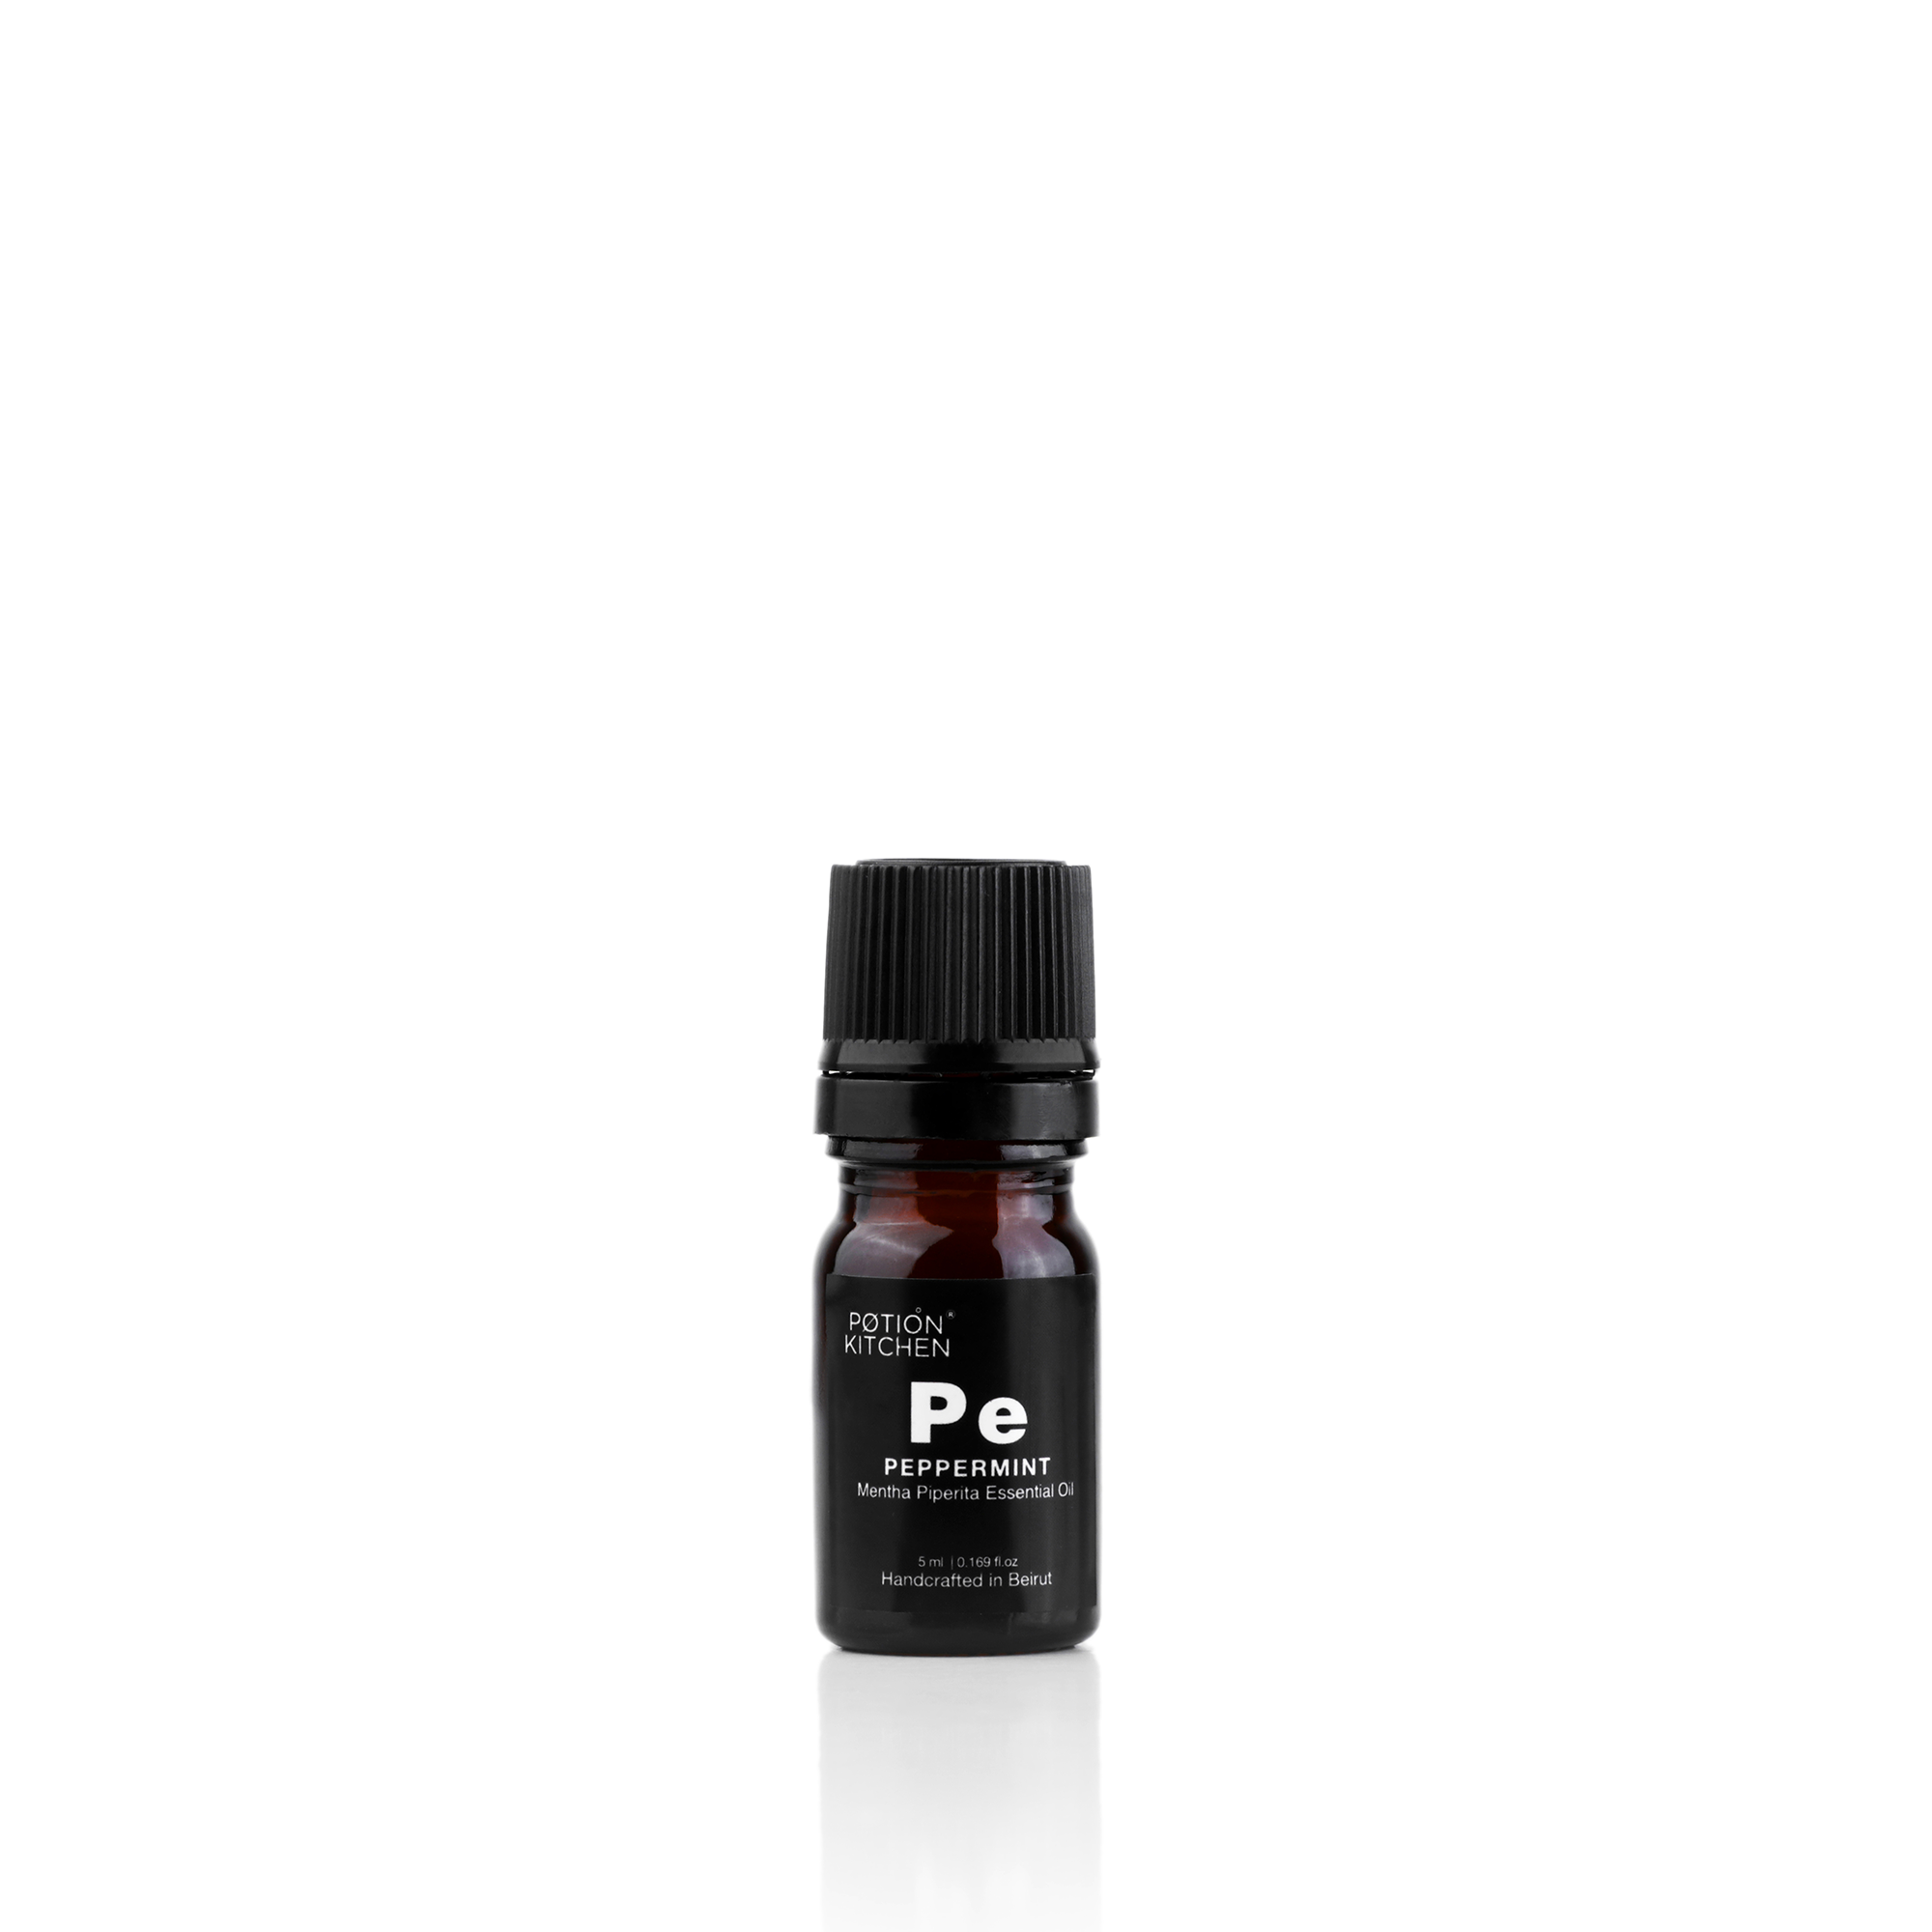 Potion Kitchen -Peppermint Essential Oil 5mL